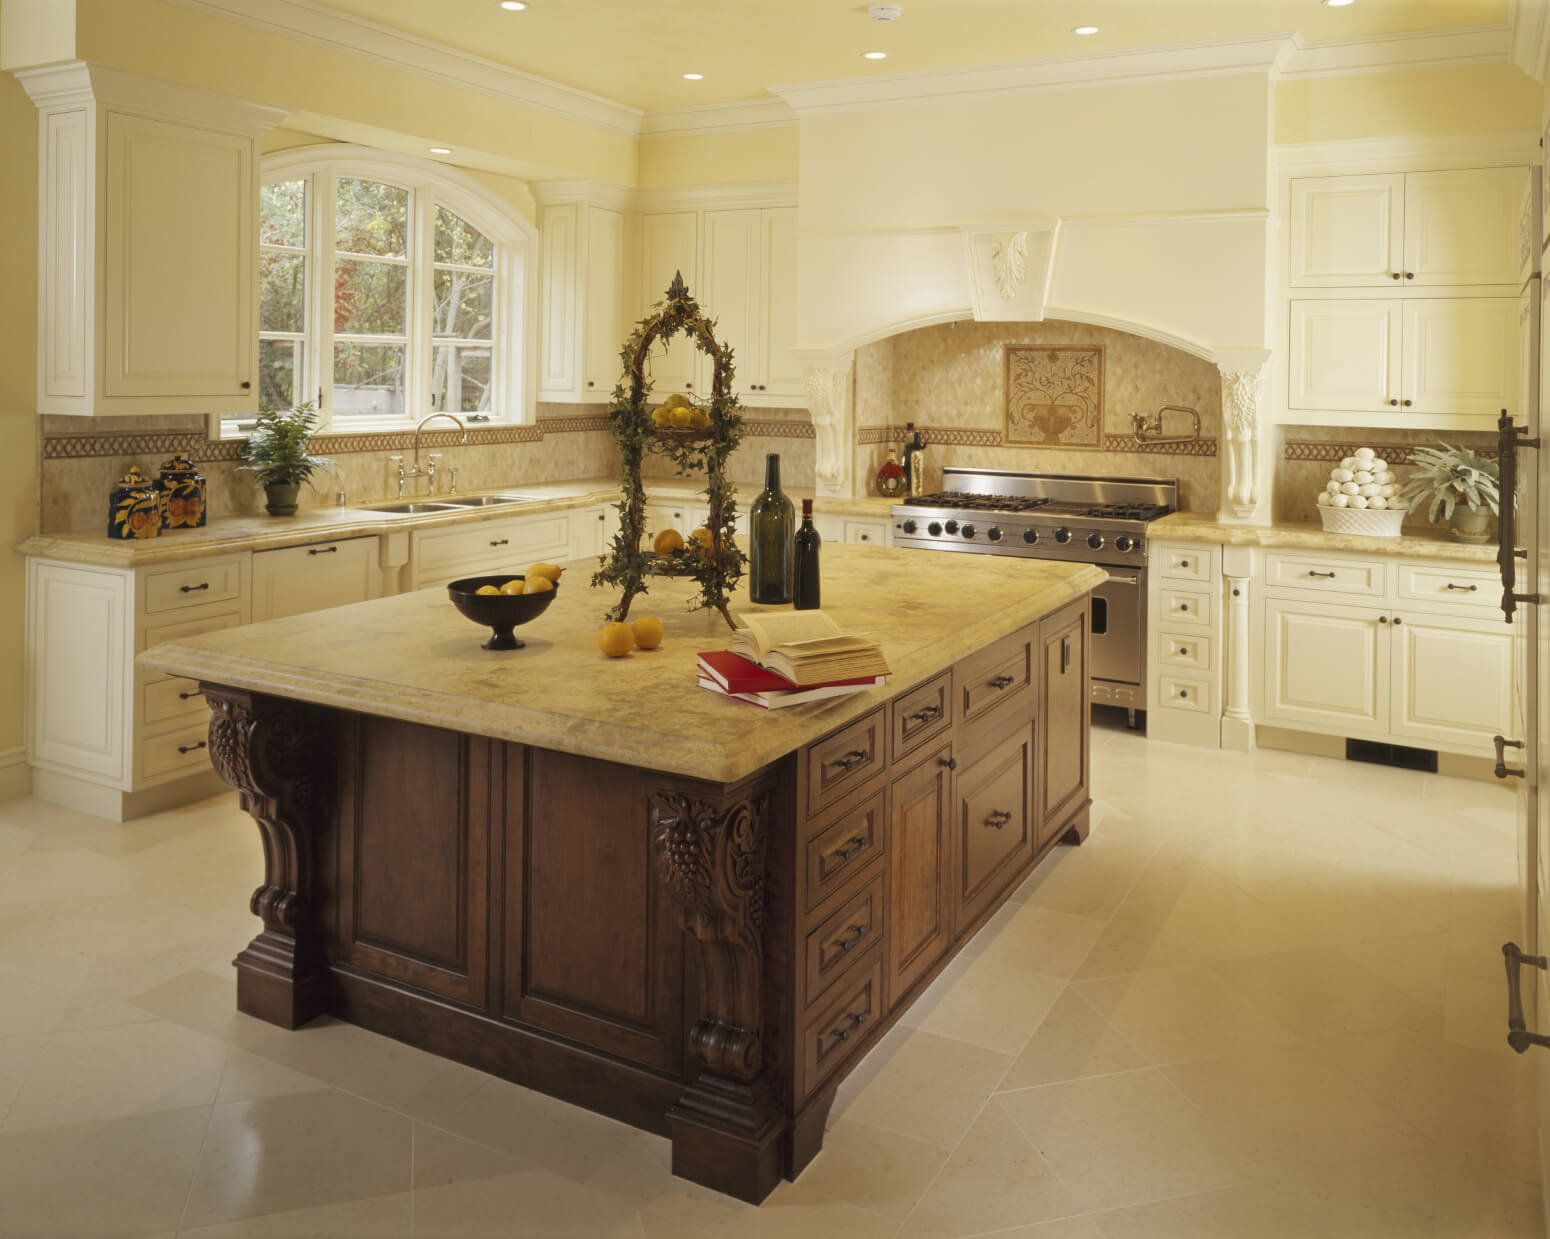 48 luxury dream kitchen designs worth every penny photos for Kitchen island designs